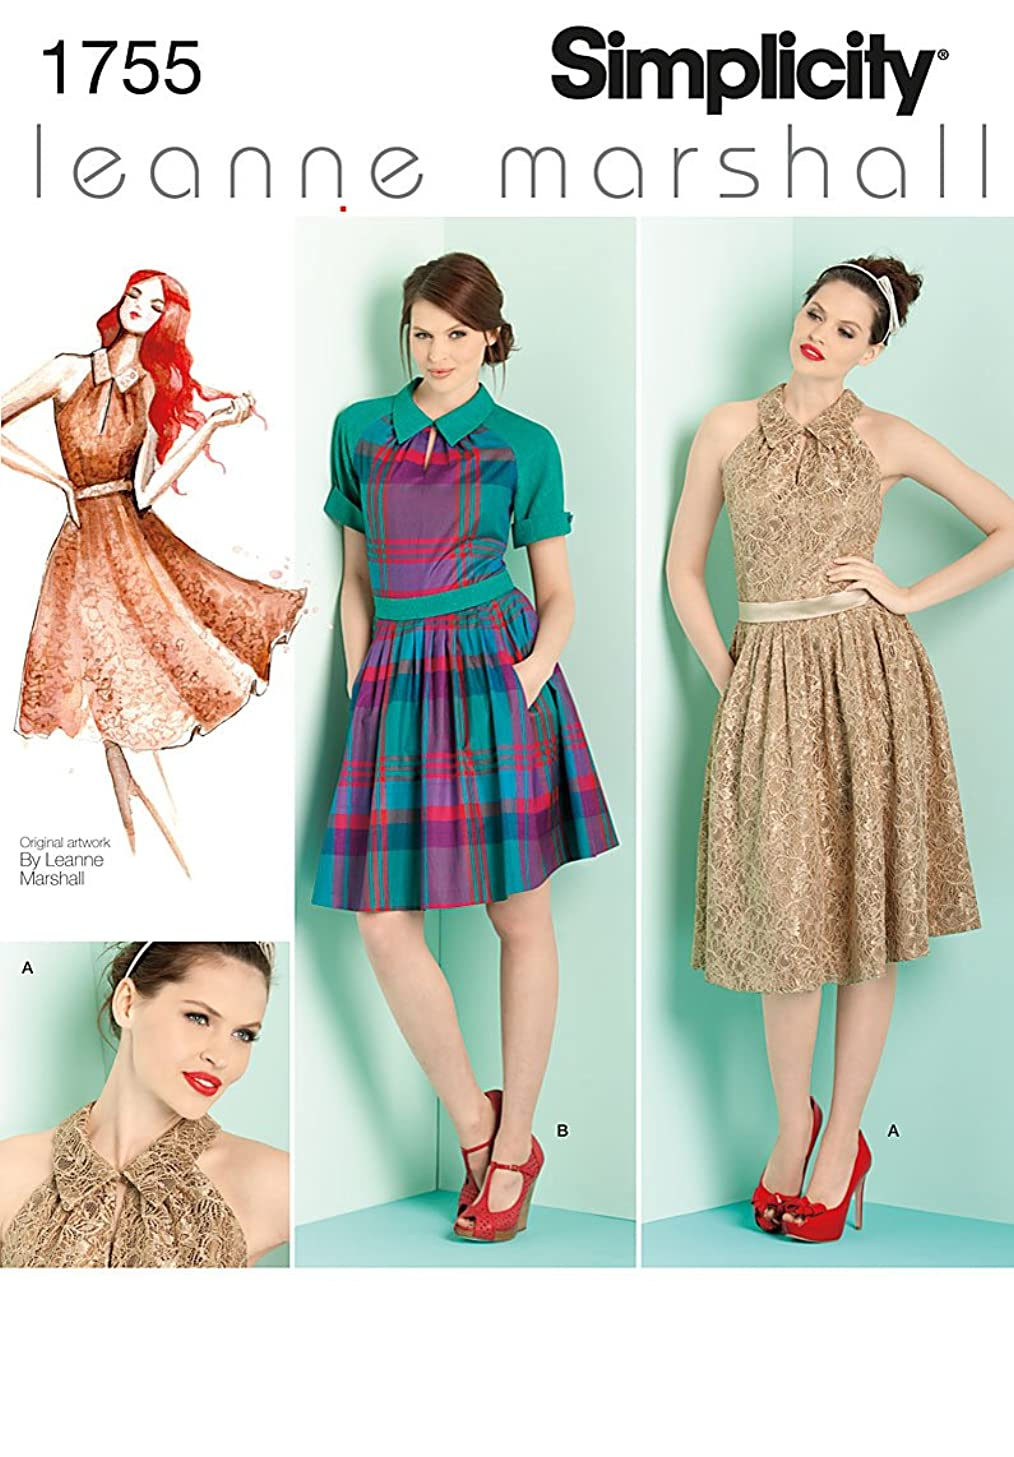 Simplicity Leanne Marshall Pattern 1755 Misses Dress in 2 Lengths and Tie Belt Sizes 12-14-16-18-20